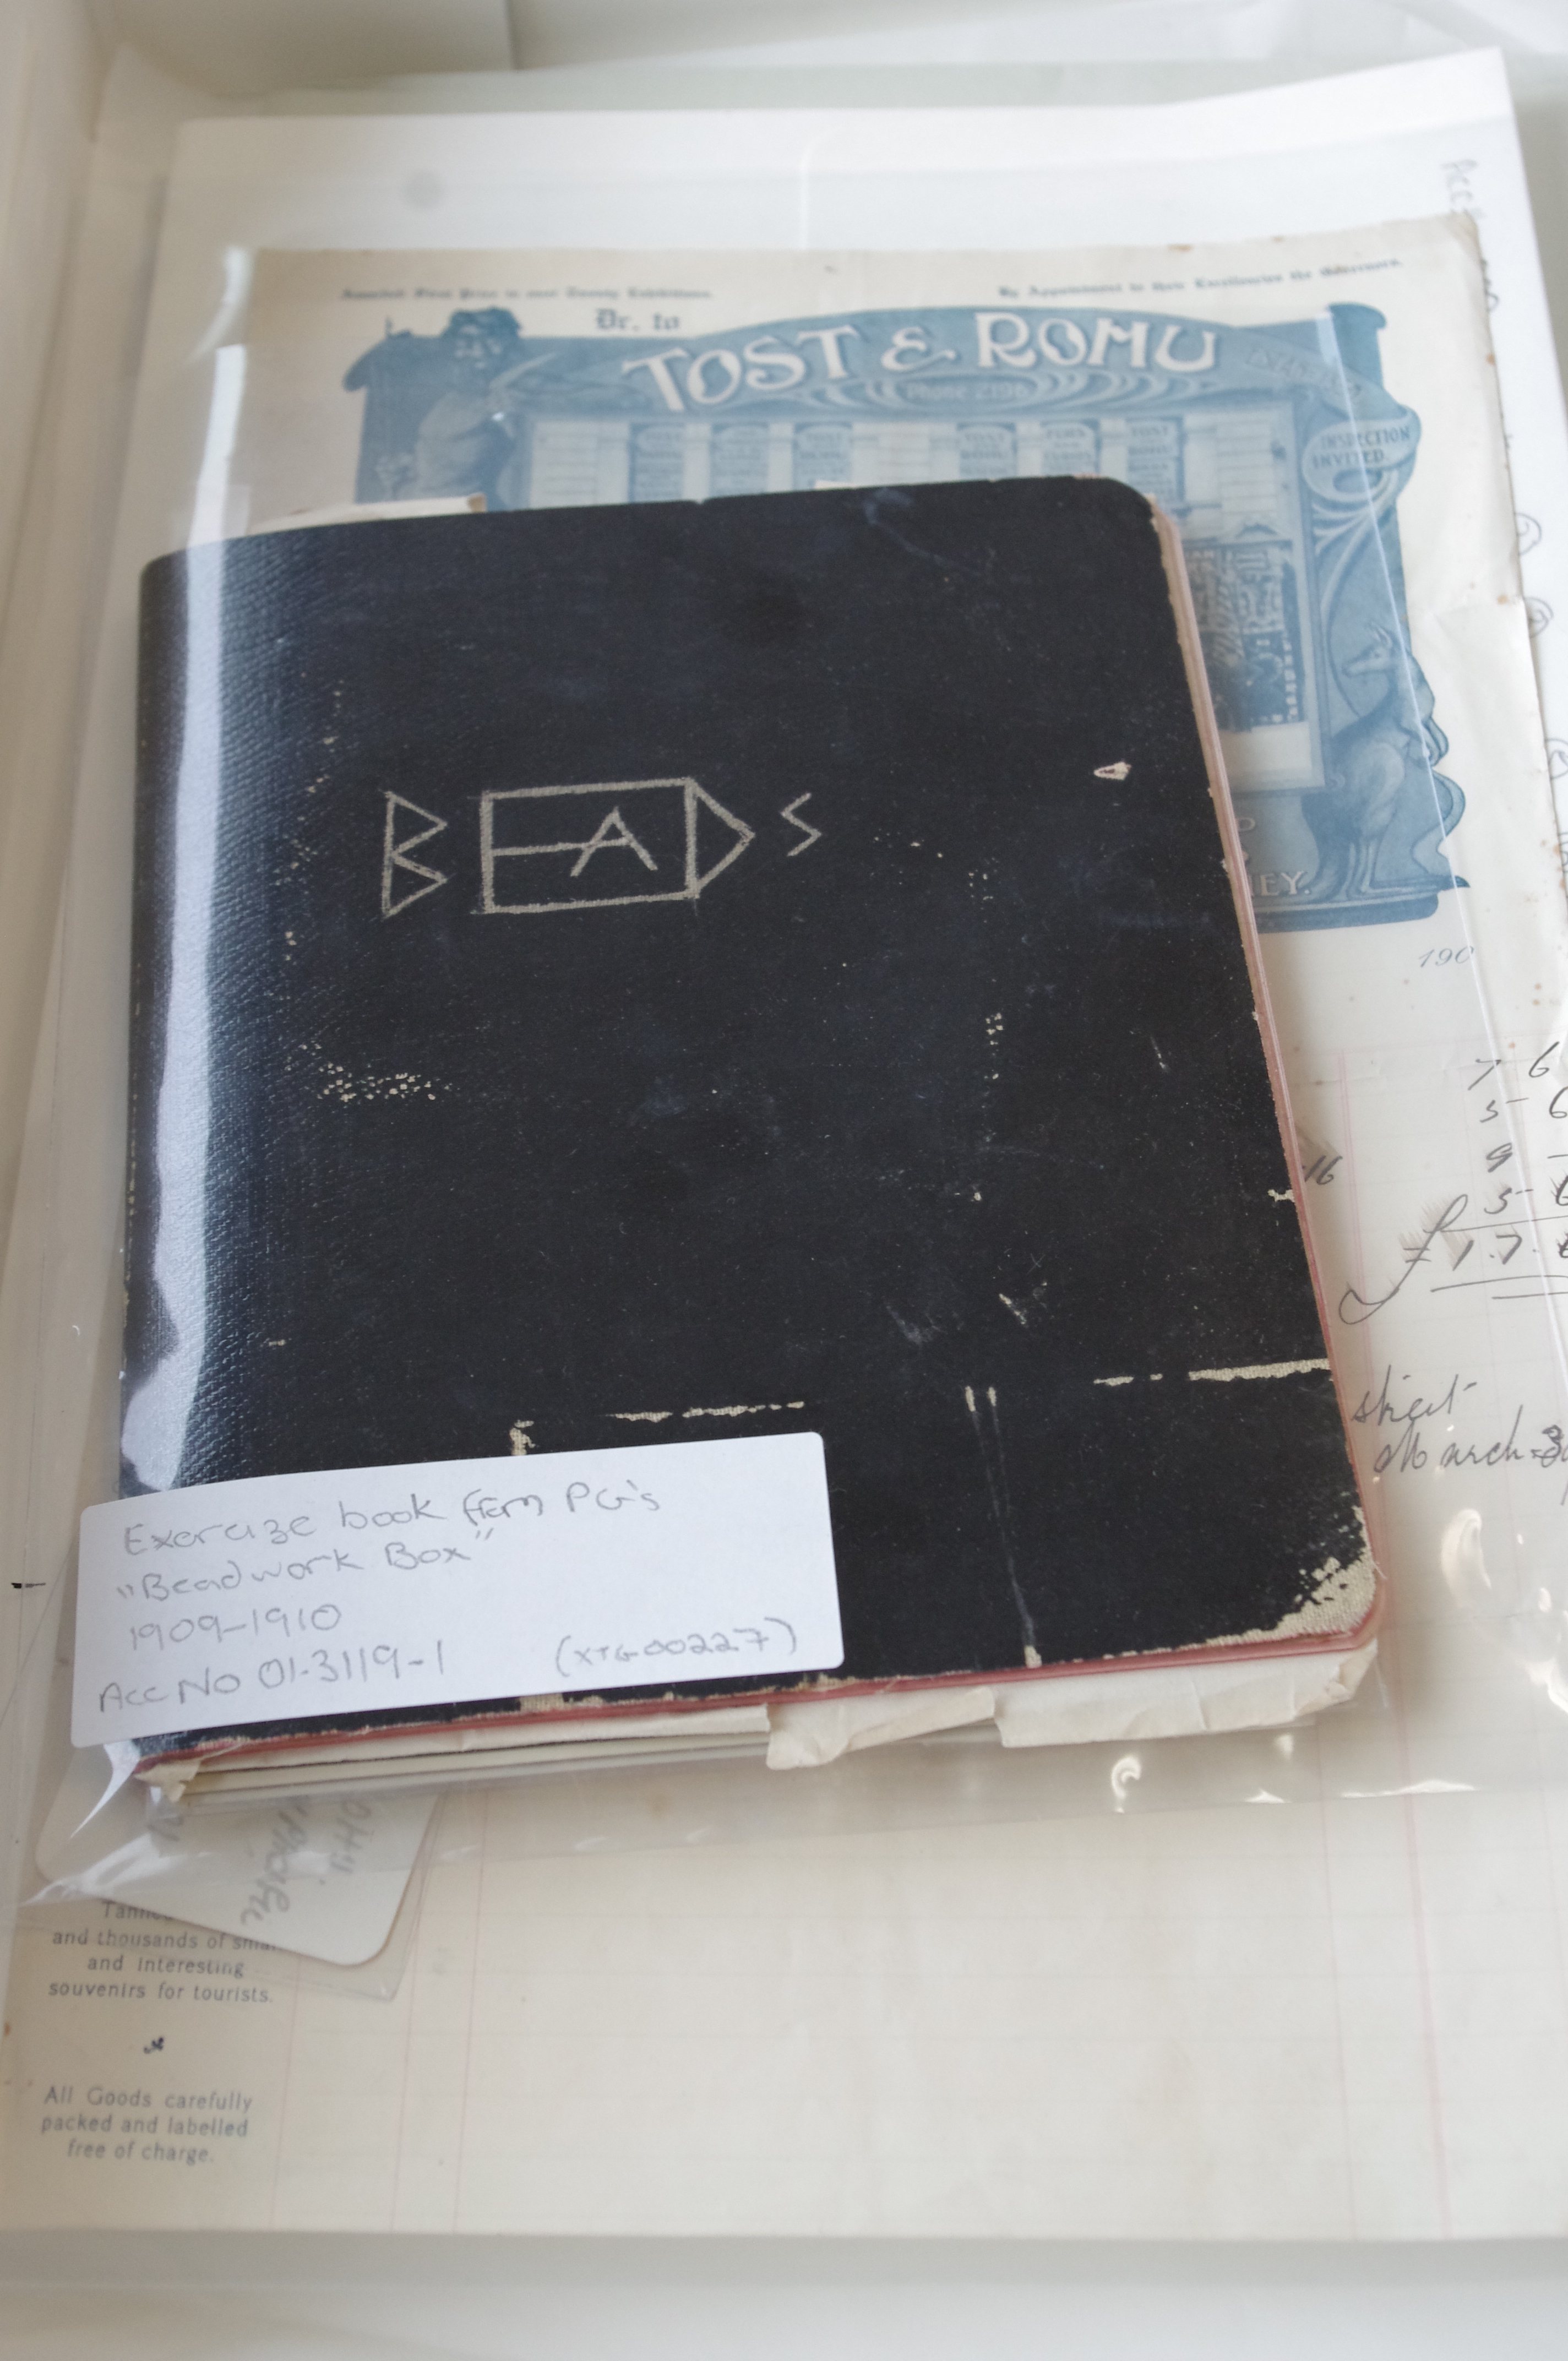 Box containing archival material related to Percy Grainger's beadwork